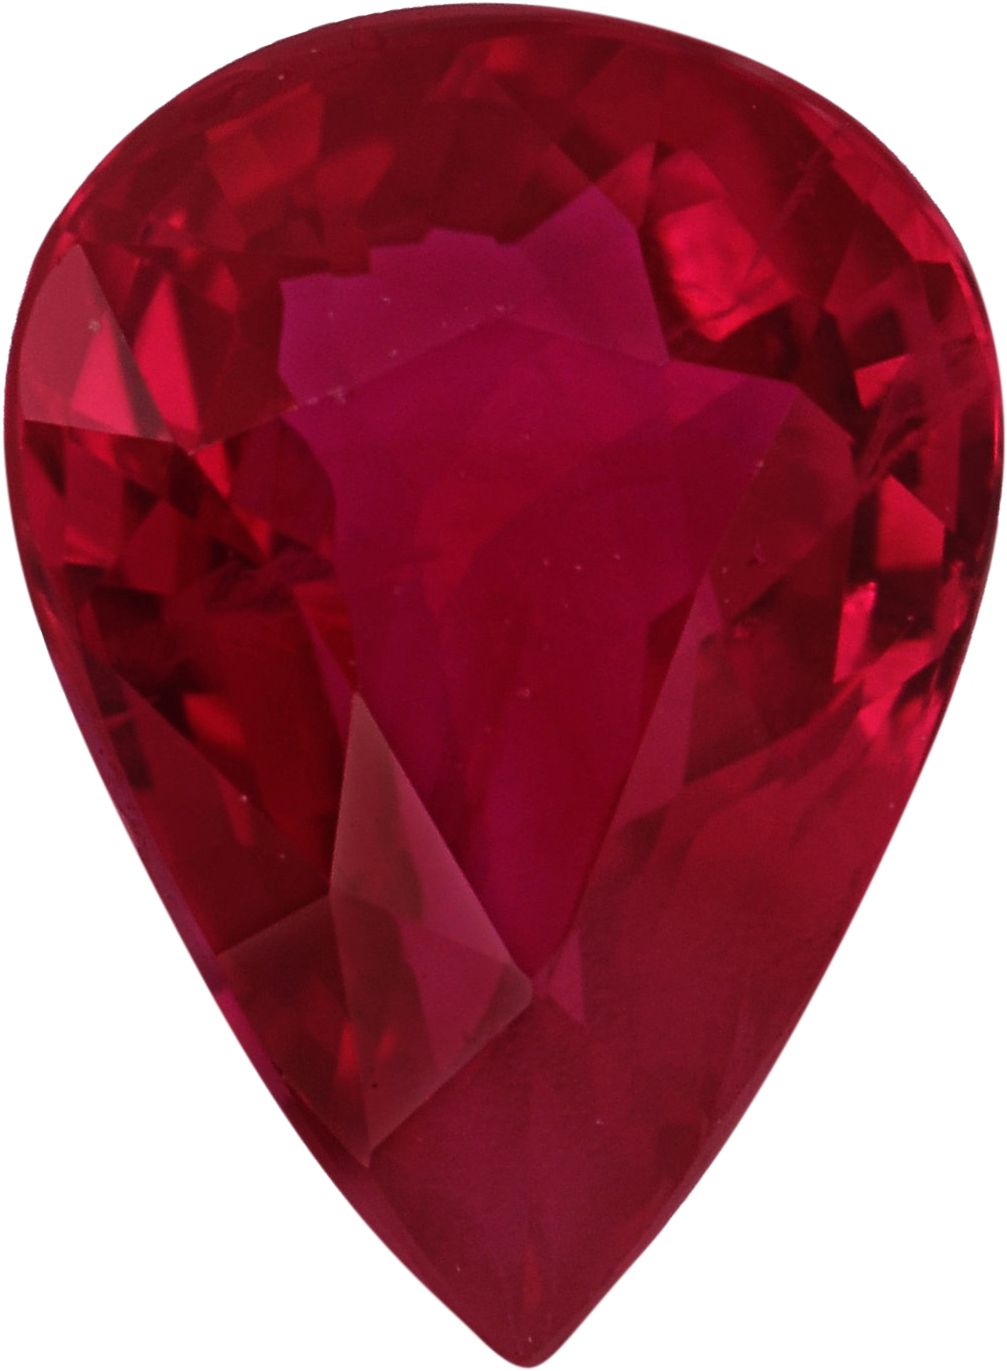 Exceptional Pear Shape Loose Ruby Gem, Vivid  Red Color, 7 x 5.17 mm, 1.05 carats